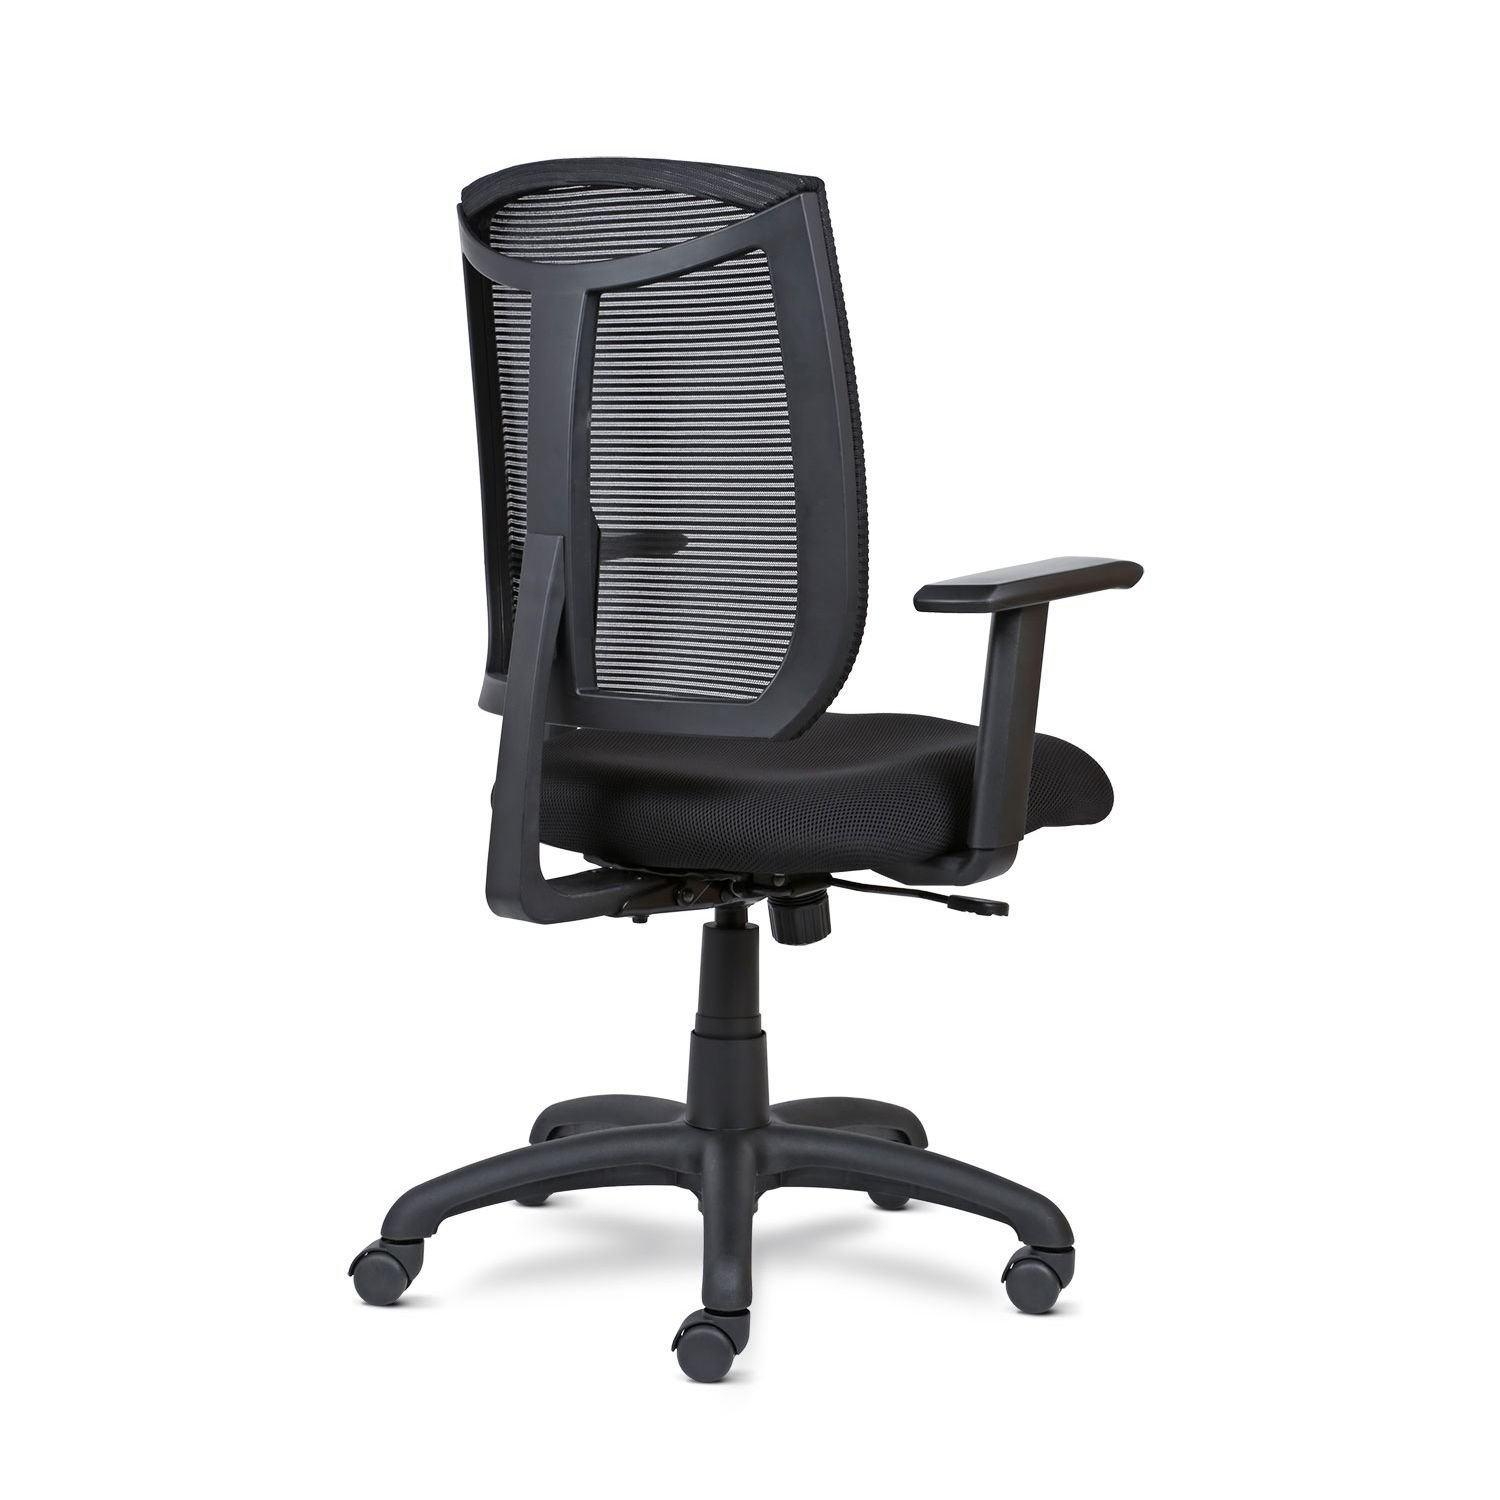 MIA Bria Swivel Tilt High-Back Desk Chair with Mesh Back, Black